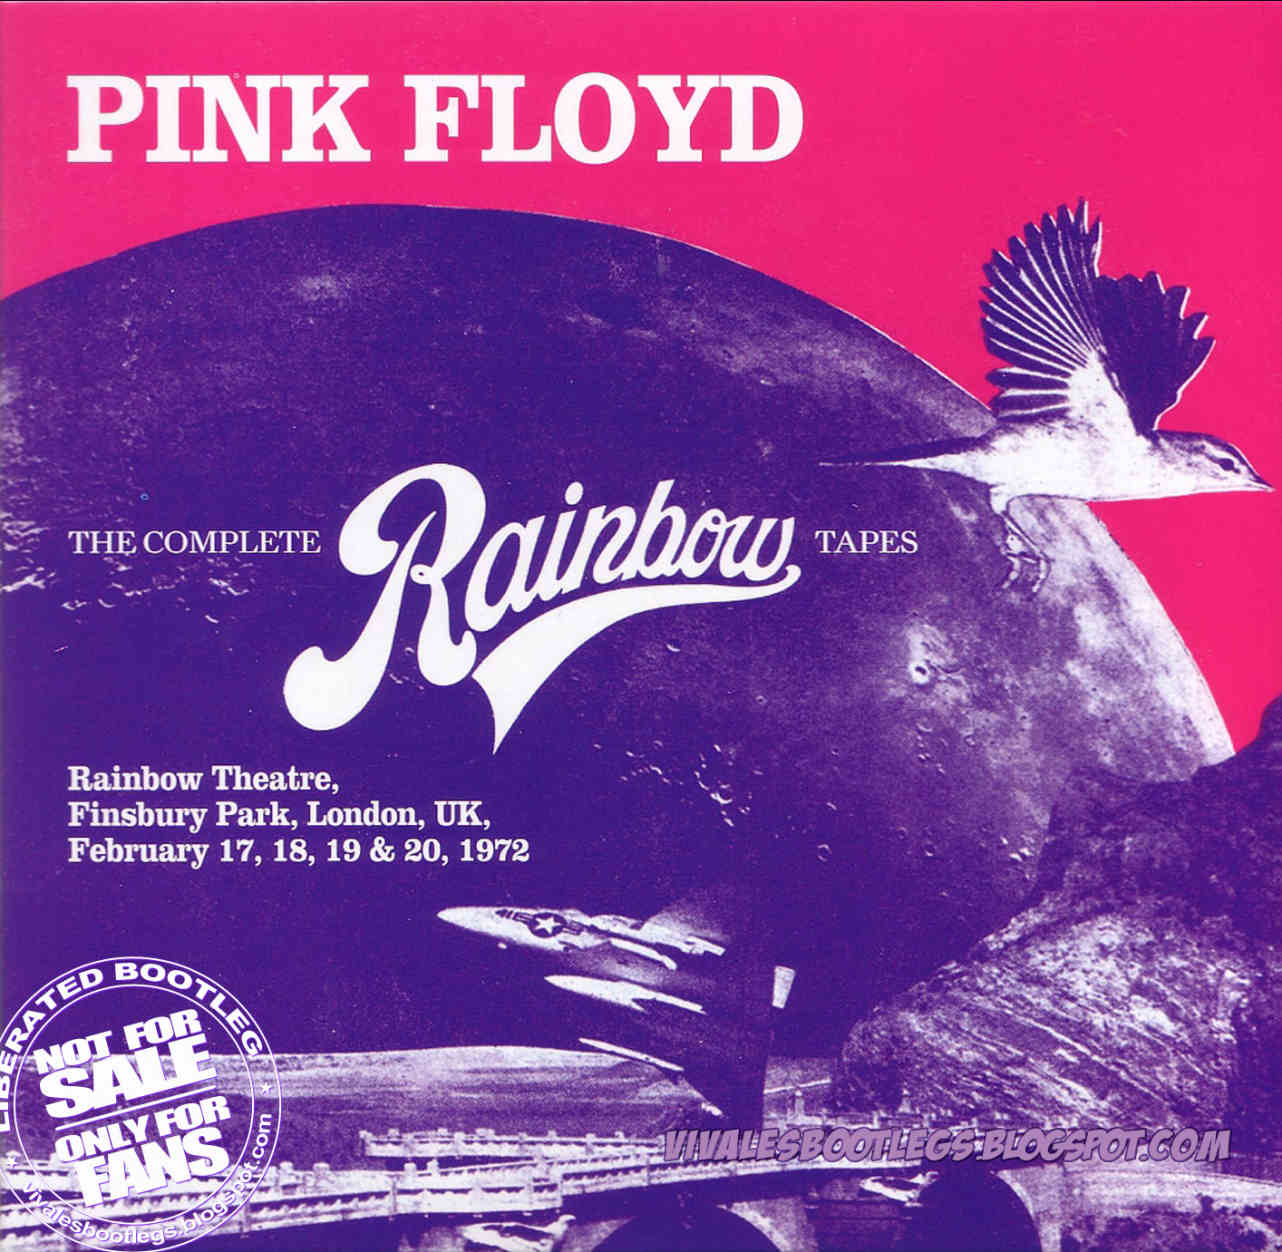 Pink Floyd: The Complete Rainbow Tapes. Finsbury Park, London, England - February 17,18,19 & 20, 1972. (Octuple CD BOXSET :: Mp3 @320 kbps & FLAC)